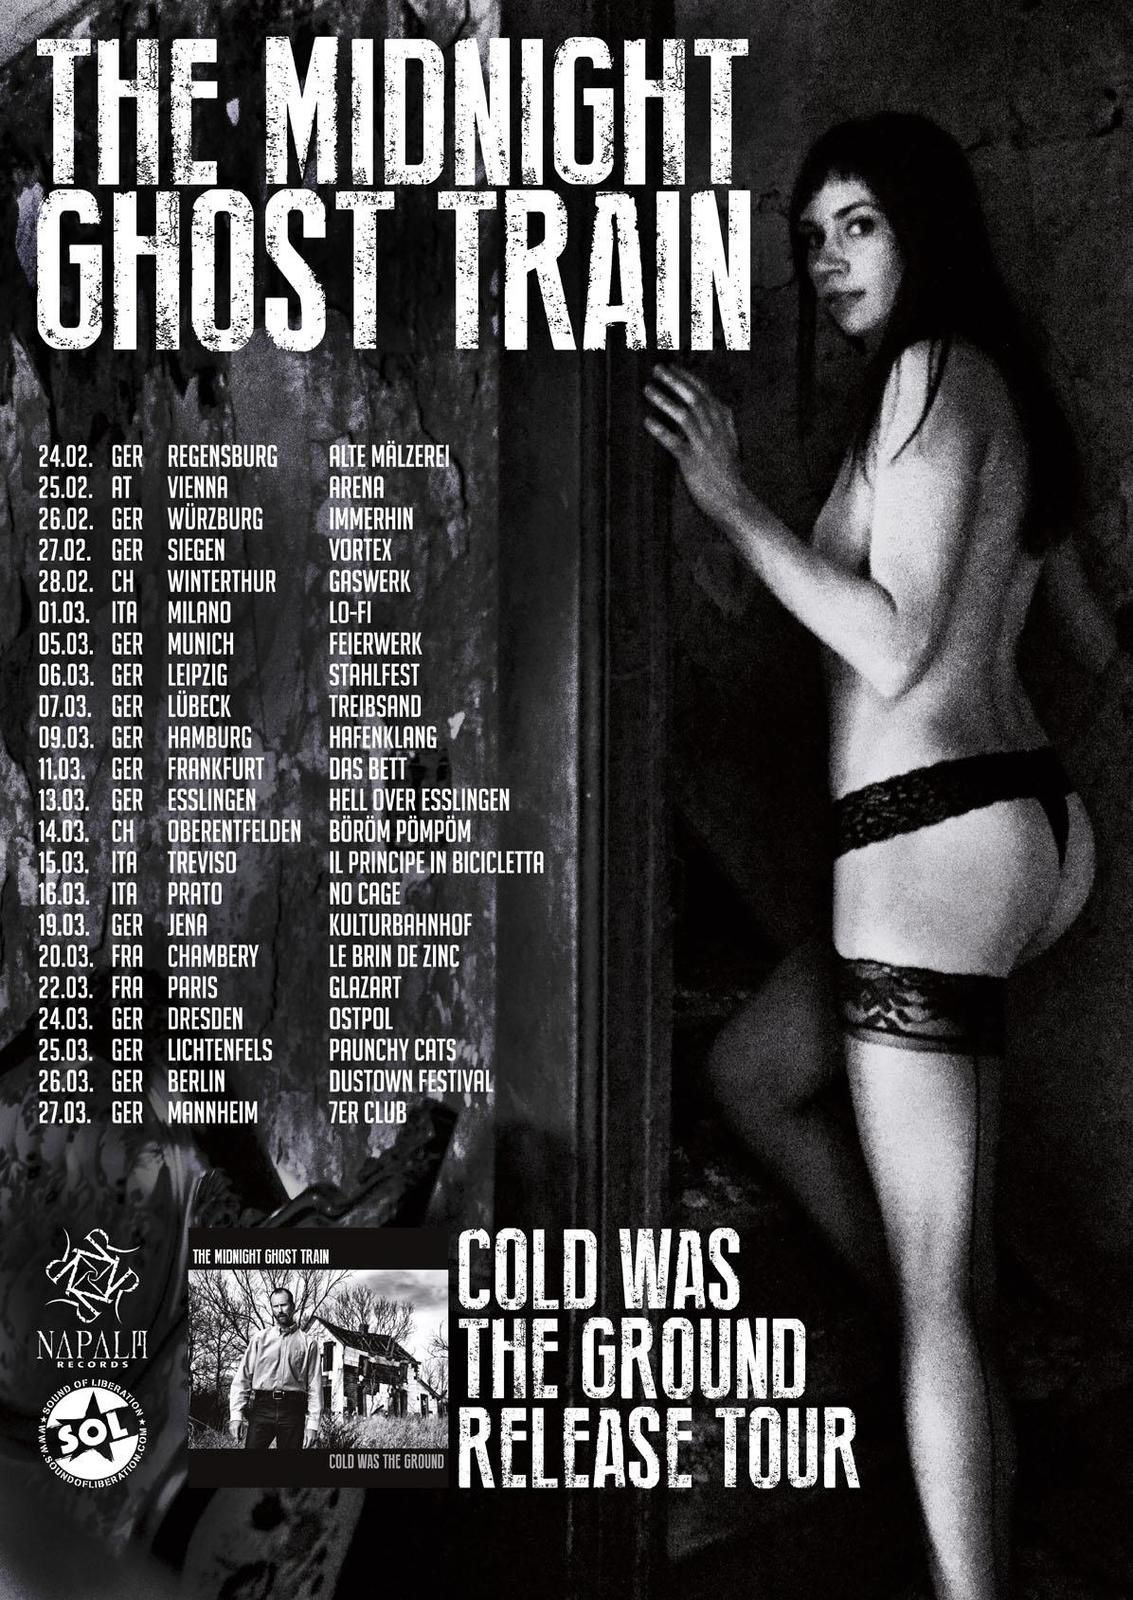 MIDNIGHT GHOST TRAIN on tour in Europe